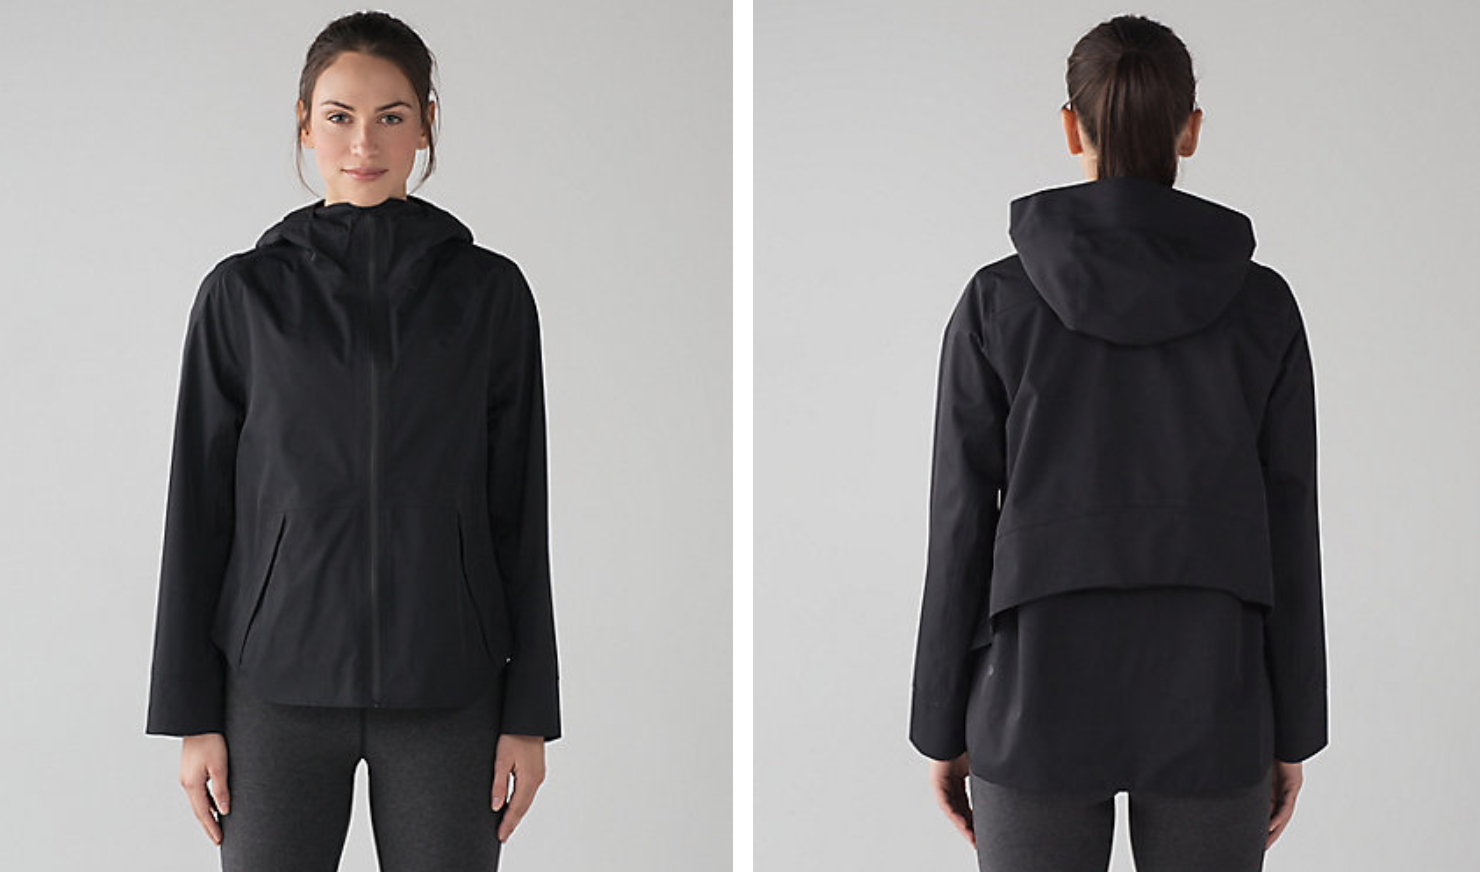 https://api.shopstyle.com/action/apiVisitRetailer?url=https%3A%2F%2Fshop.lululemon.com%2Fp%2Fwomens-outerwear%2FEveryday-Getaway-Jacket%2F_%2Fprod8431425%3Frcnt%3D40%26N%3D1z13ziiZ7z5%26cnt%3D71%26color%3DLW4ABFS_028603&site=www.shopstyle.ca&pid=uid6784-25288972-7